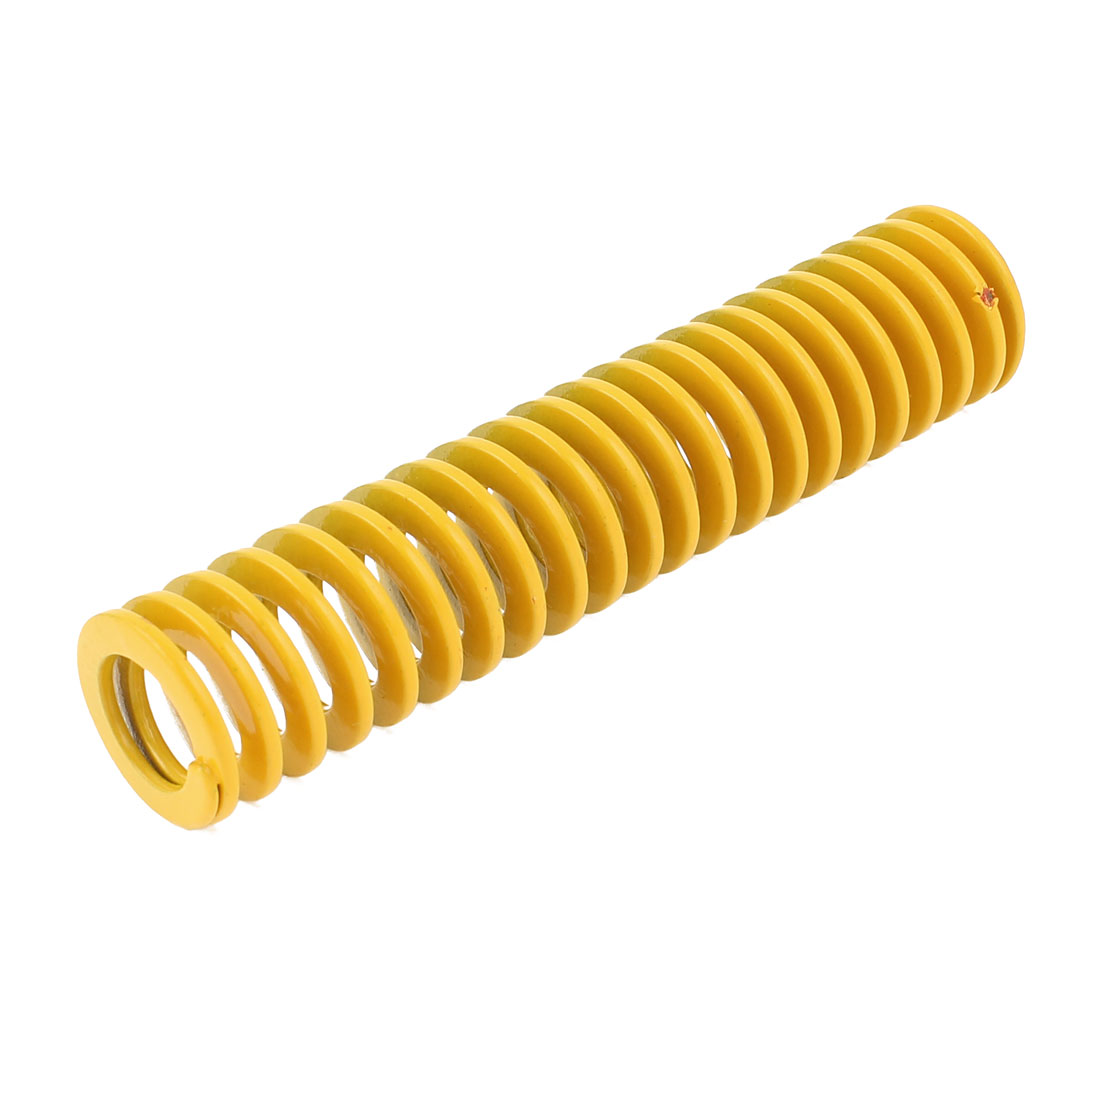 22mm x 11mm x 100mm Yellow Chromium Alloy Steel Compression Die Spring